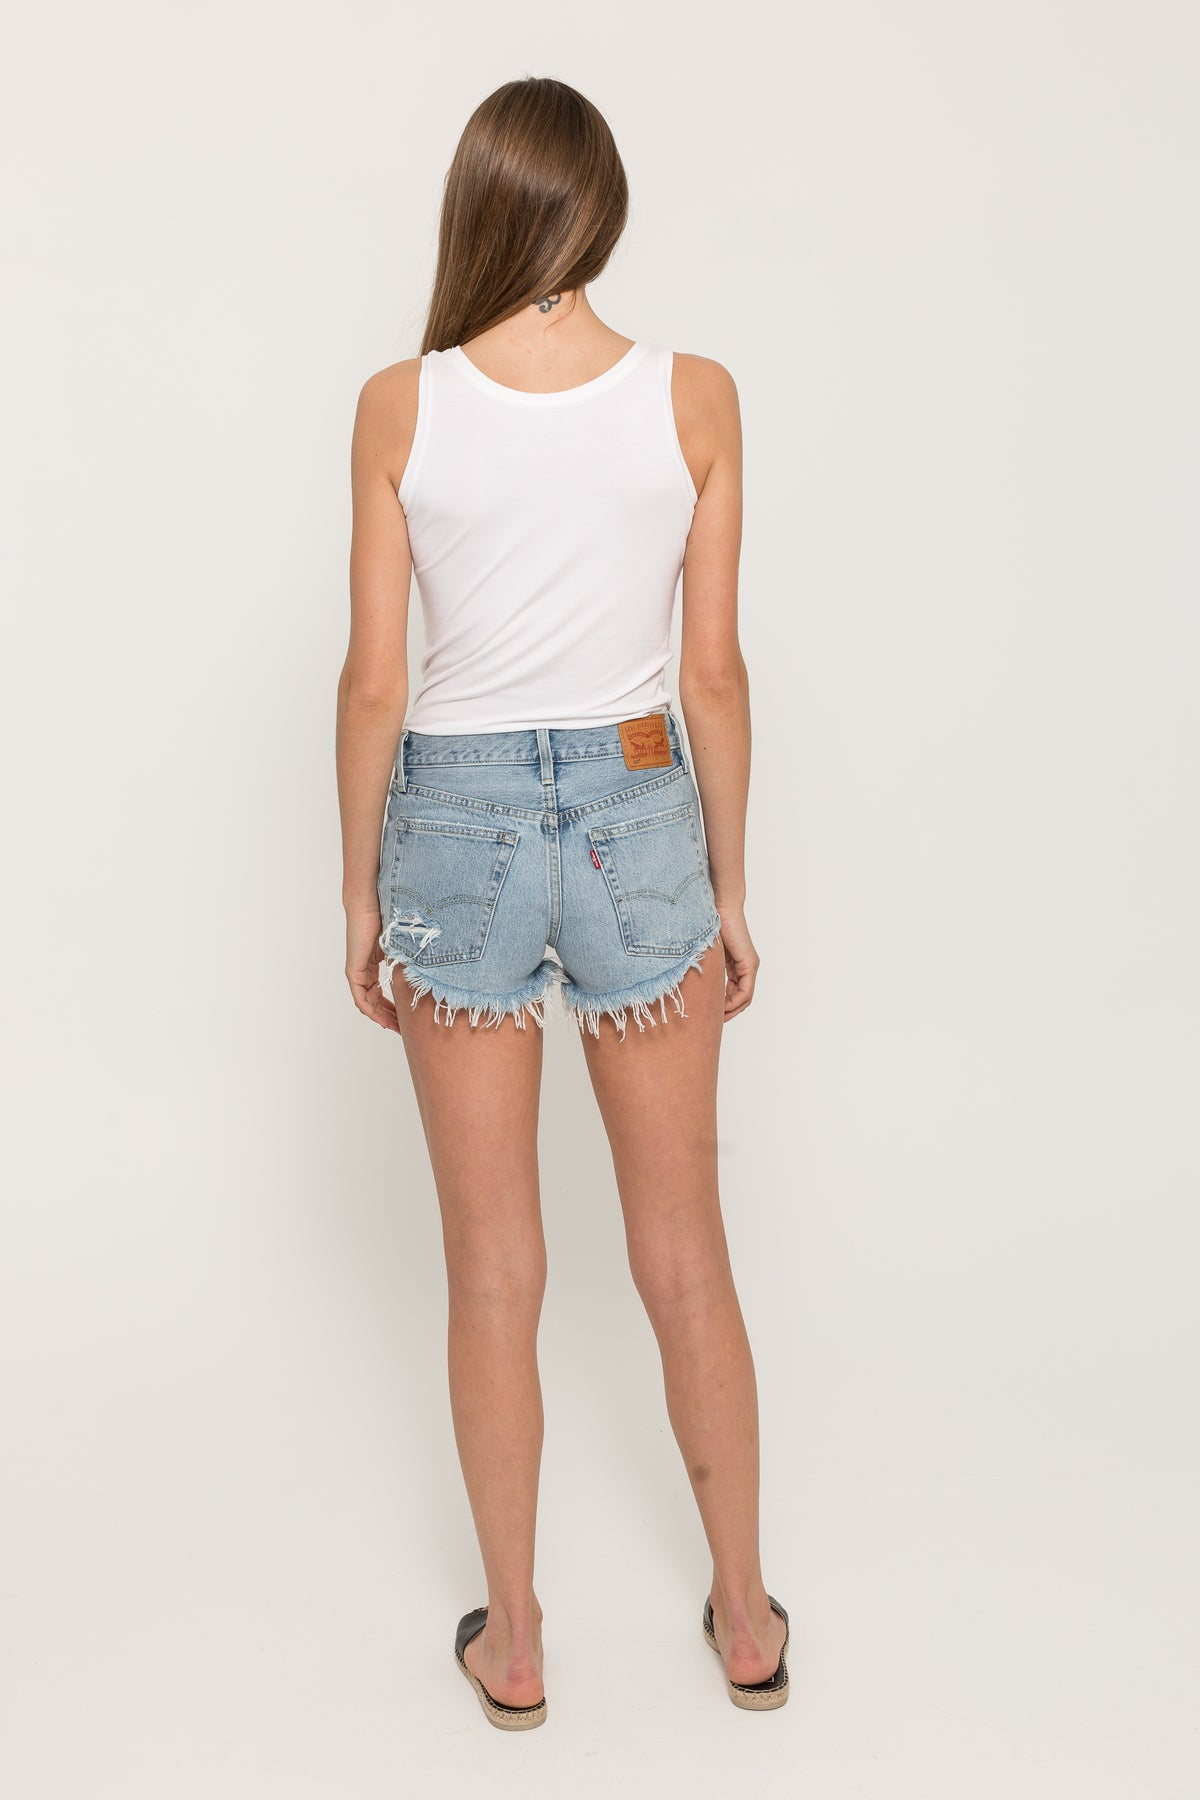 Levi'sTUNE INTO YOU 501 SHORTS6584